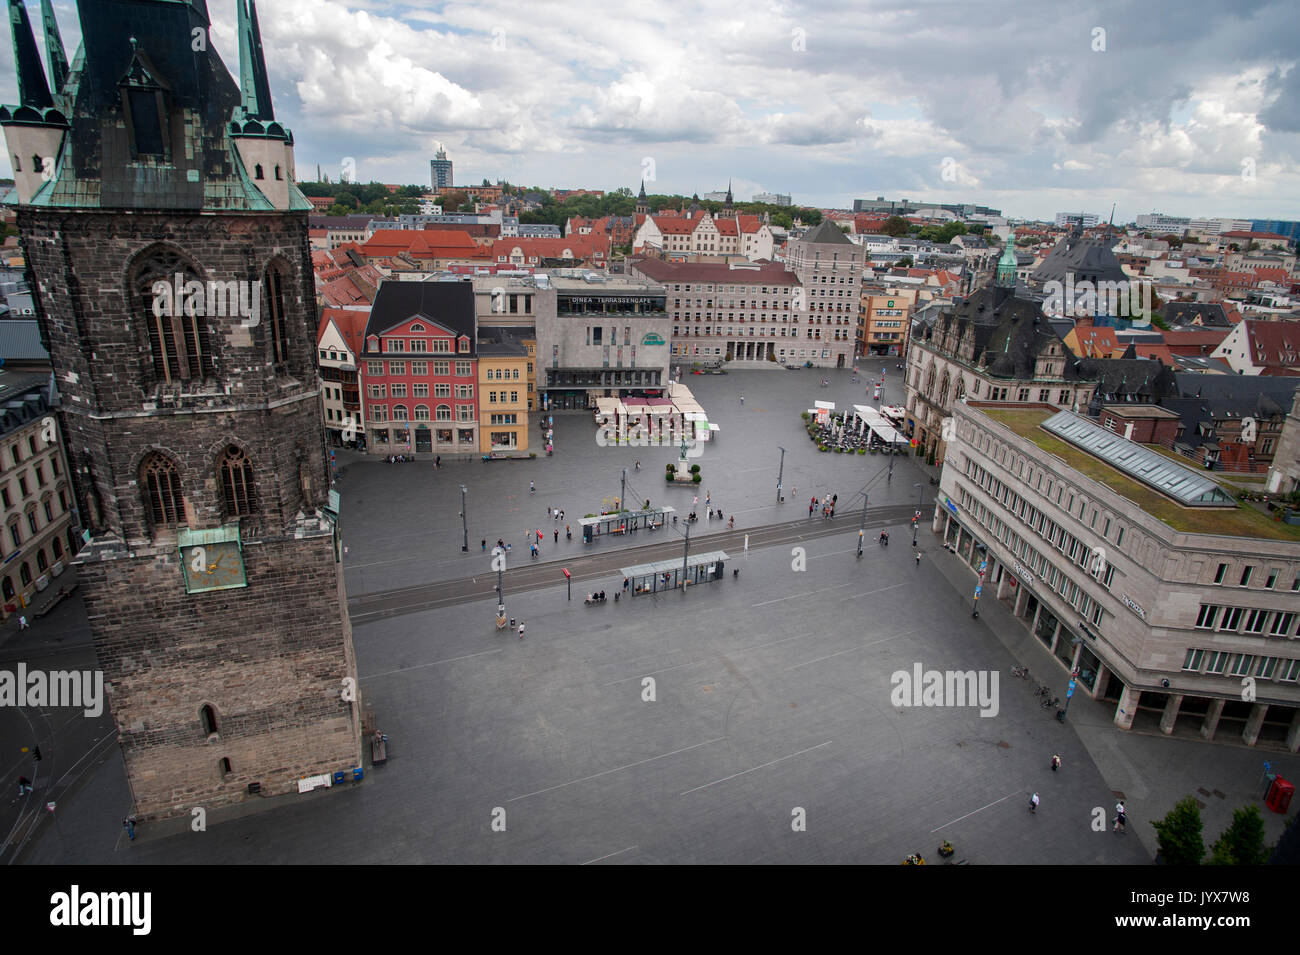 The Market Square of Halle (Saale) in Saxony-Anhalt, Germany - Stock Image